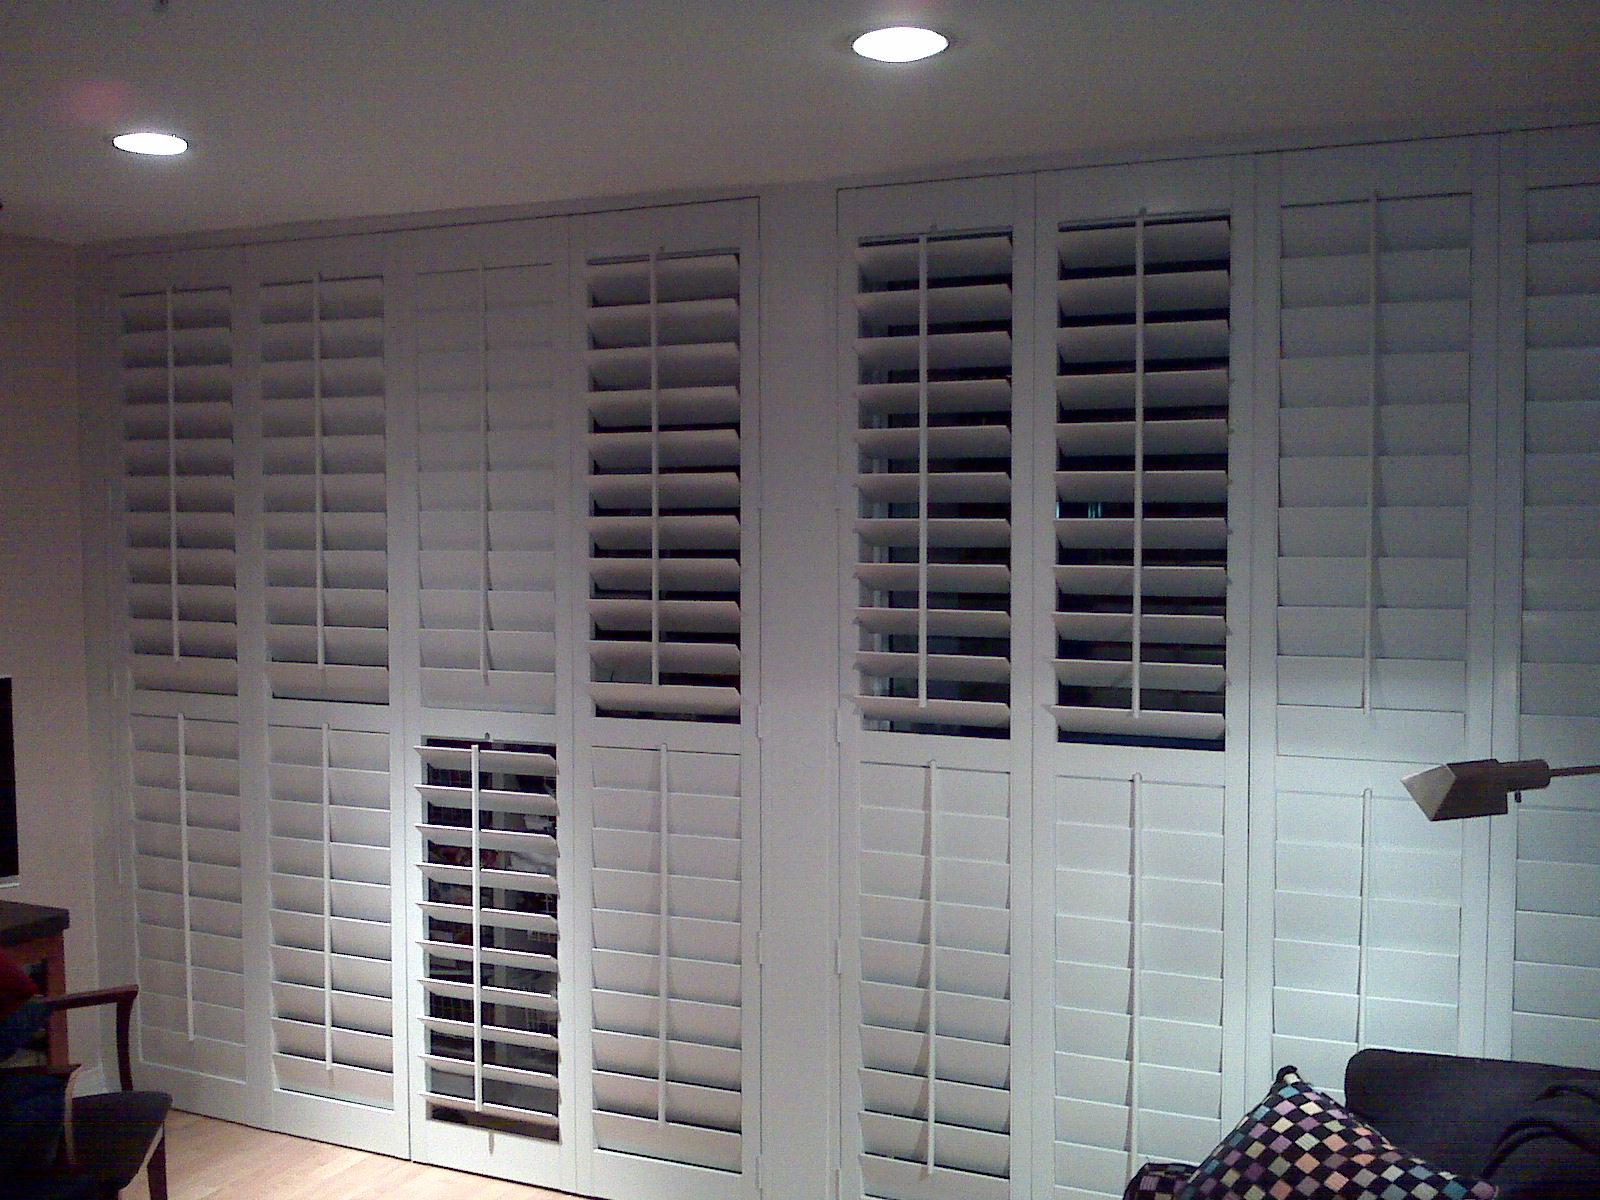 Wall To Wall Shutters Midrail